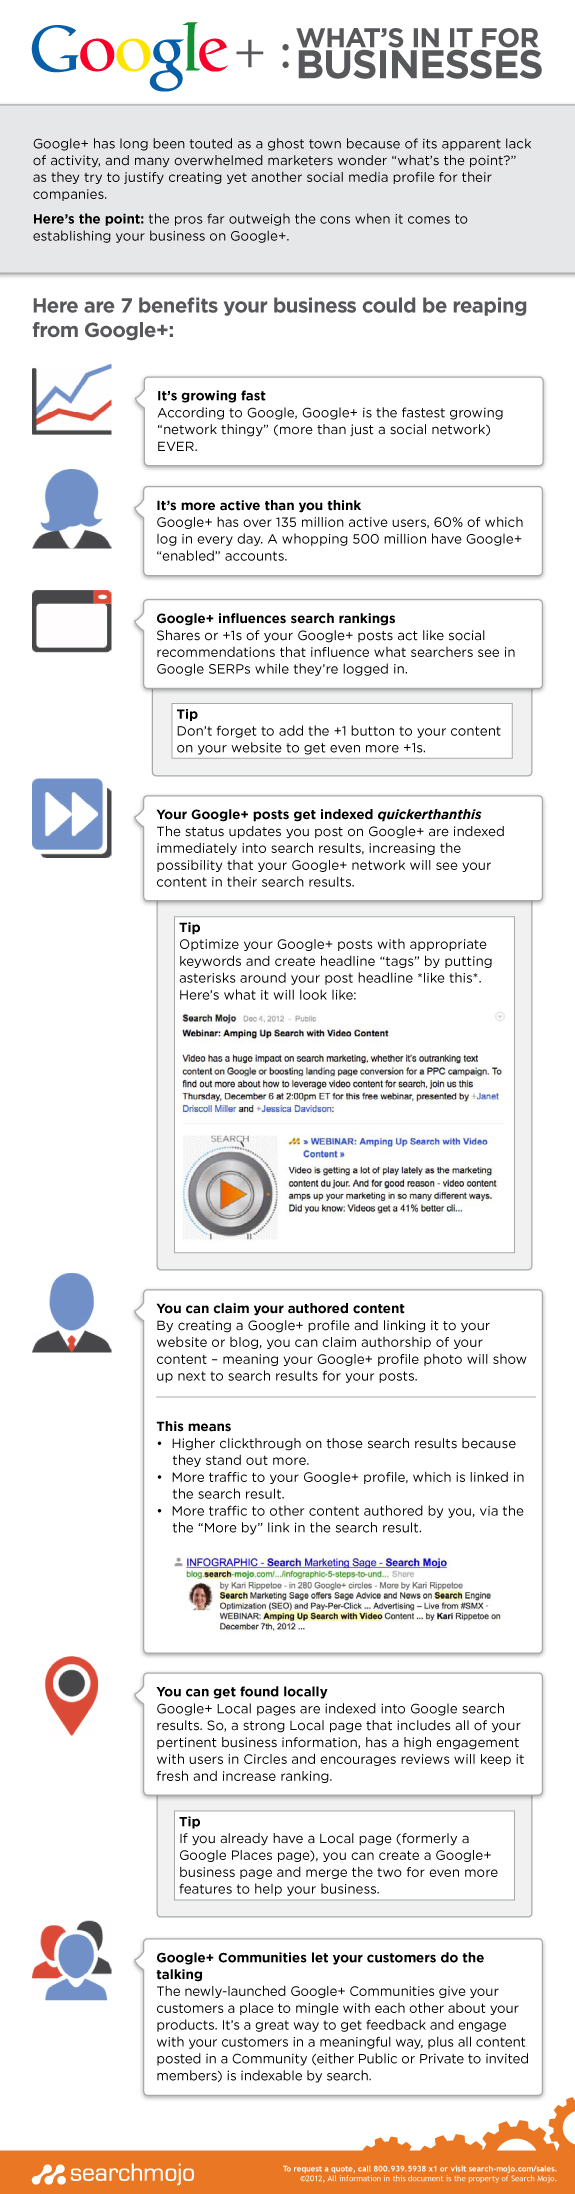 Google+ for business 7 Benefits To Using Google+ For Business 7 Benefits To Using Google+ For Business google whats in it for businesses 510687cb6b833